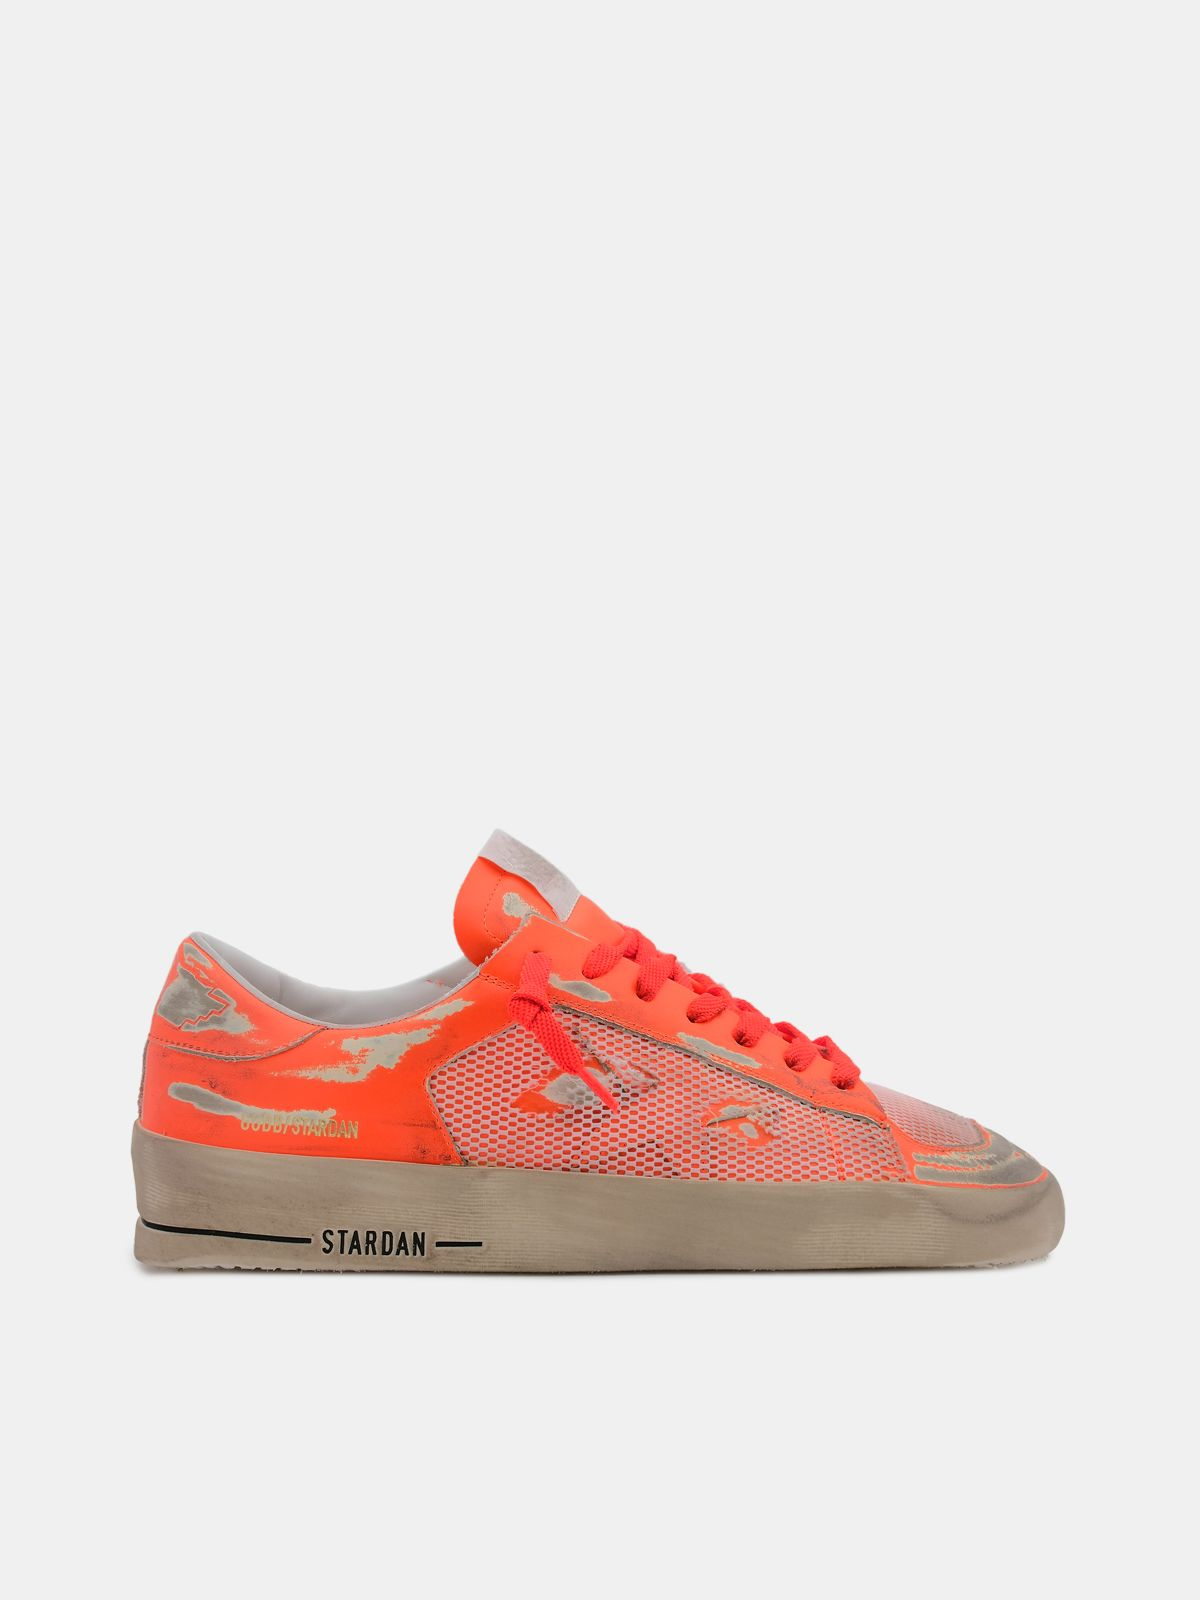 Golden Goose - Fluorescent orange Stardan sneakers in